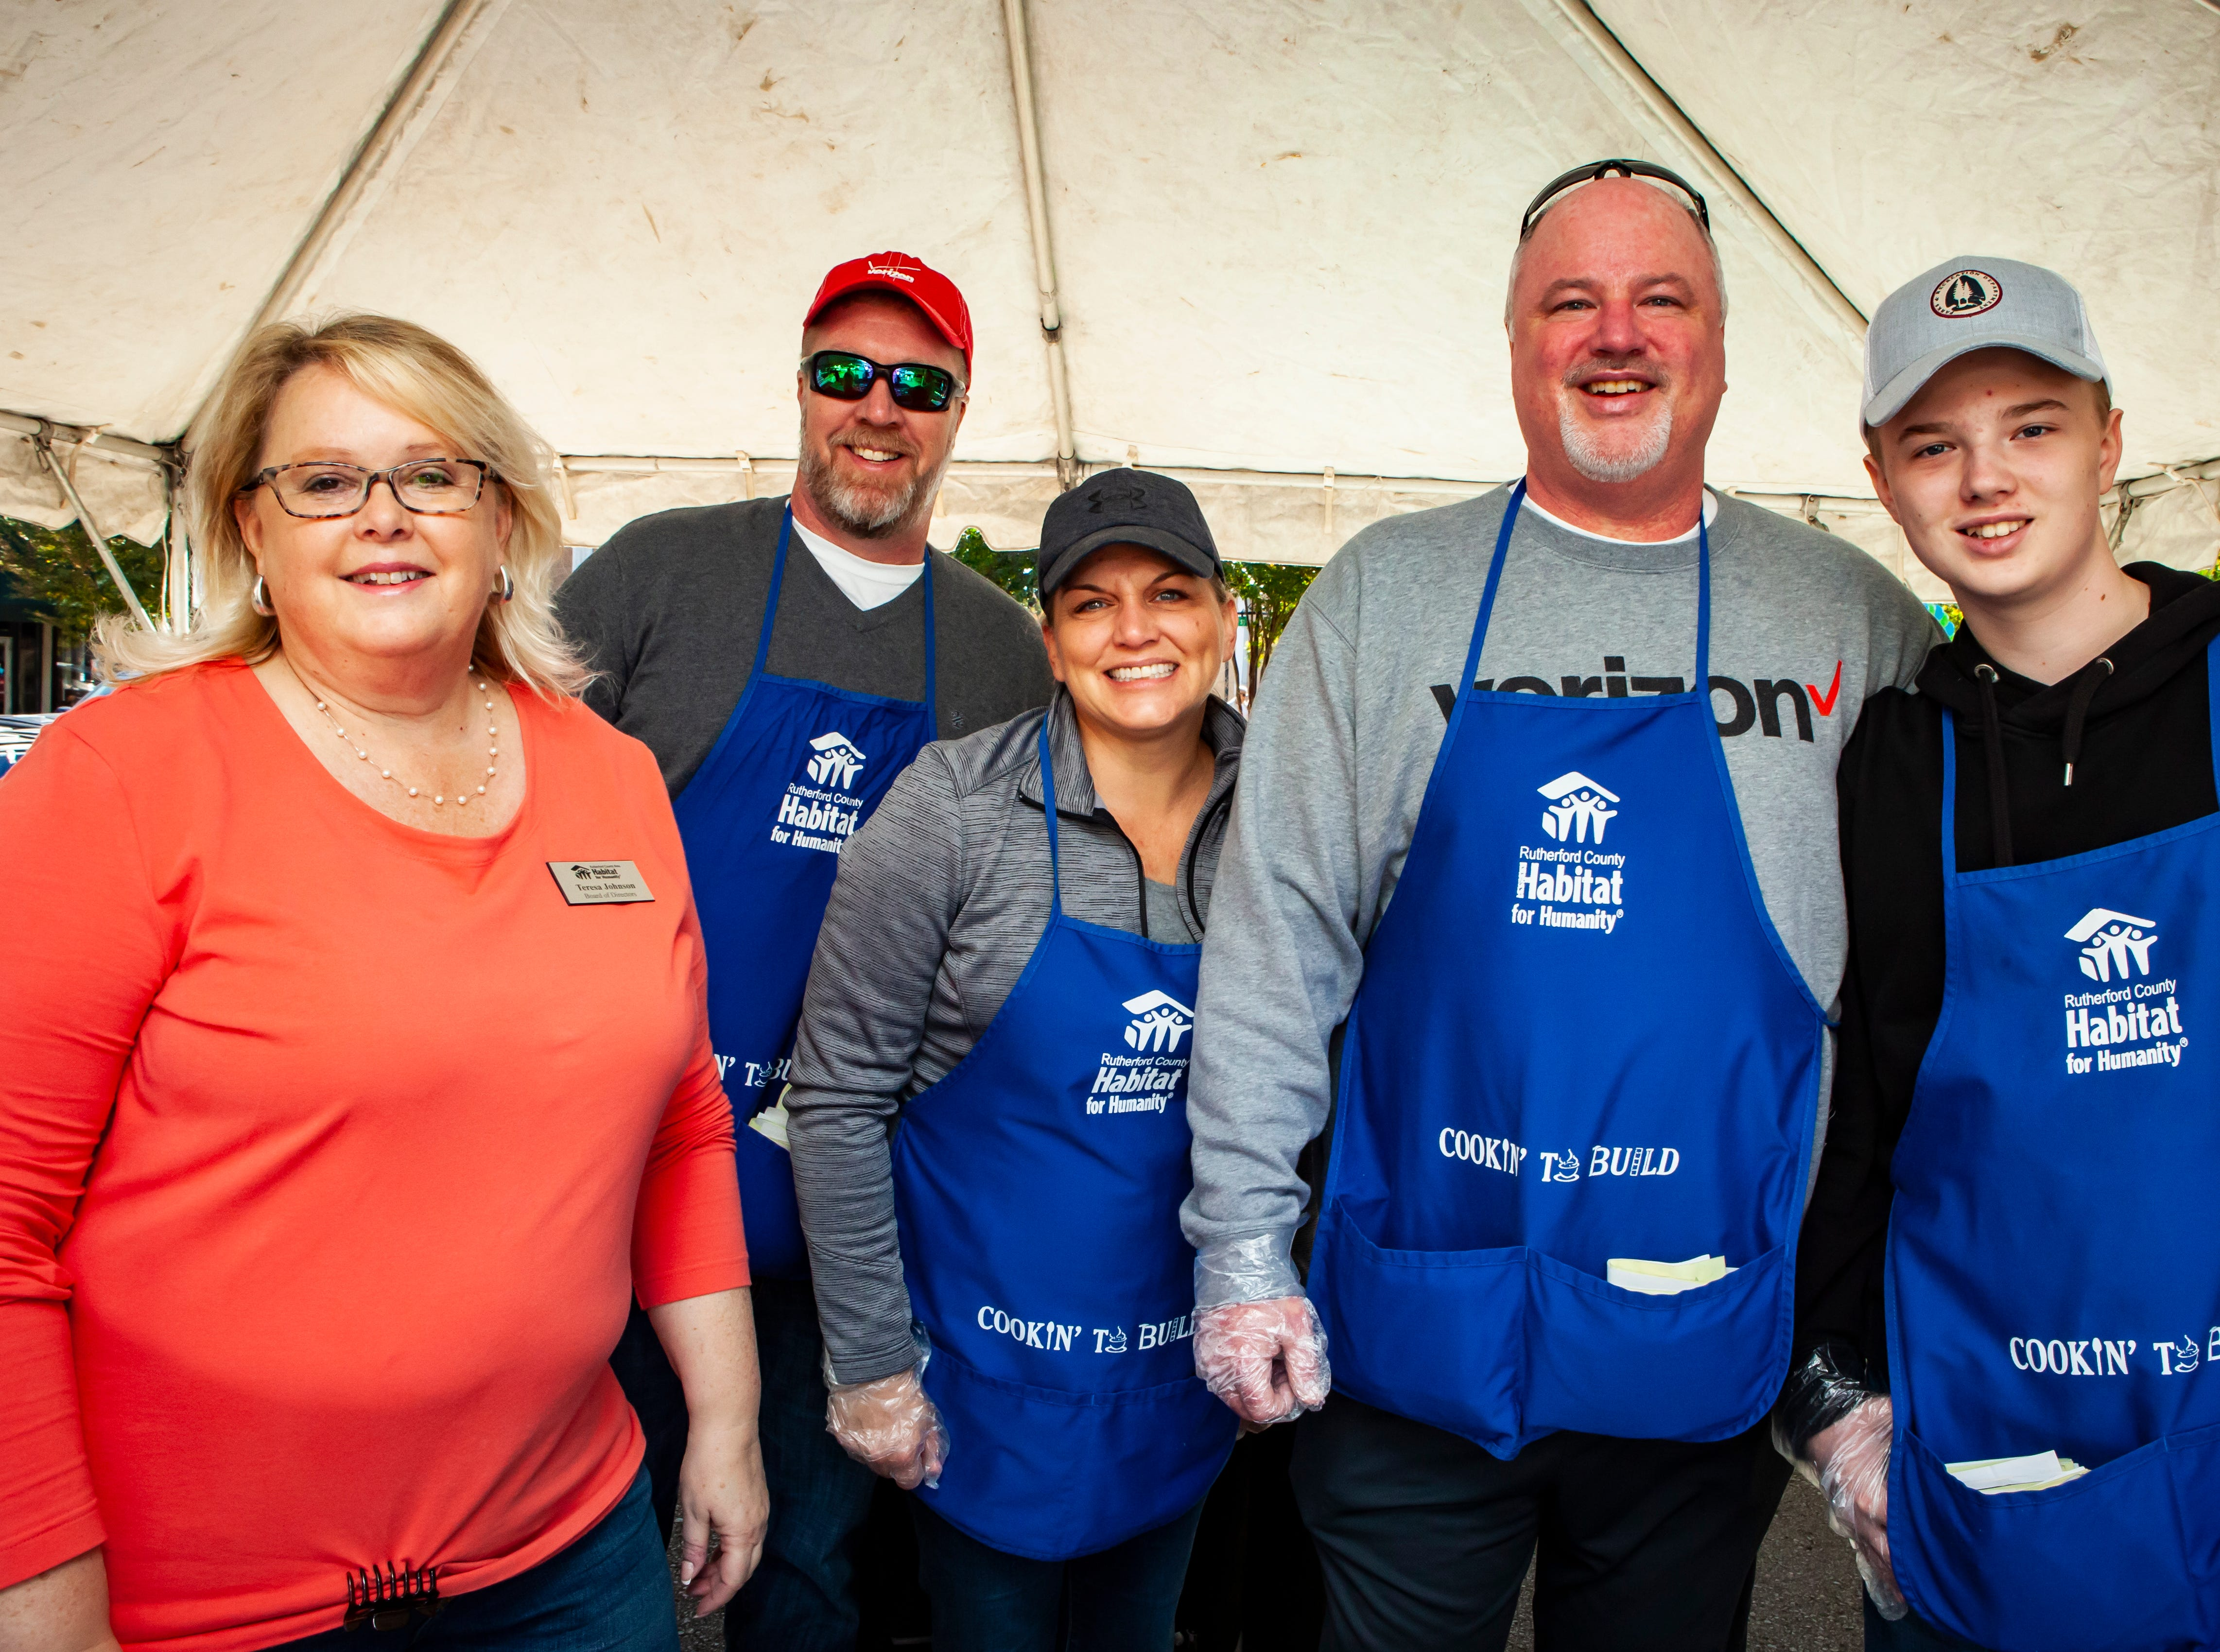 Teresa Johnson, Mike Chaffins, Mindy Stover, Randy and Ross Nicholson at Rutherford County Habitat for Humanity's 2018 Cookin' to Build fundraiser on Saturday, Nov. 3, 2018.